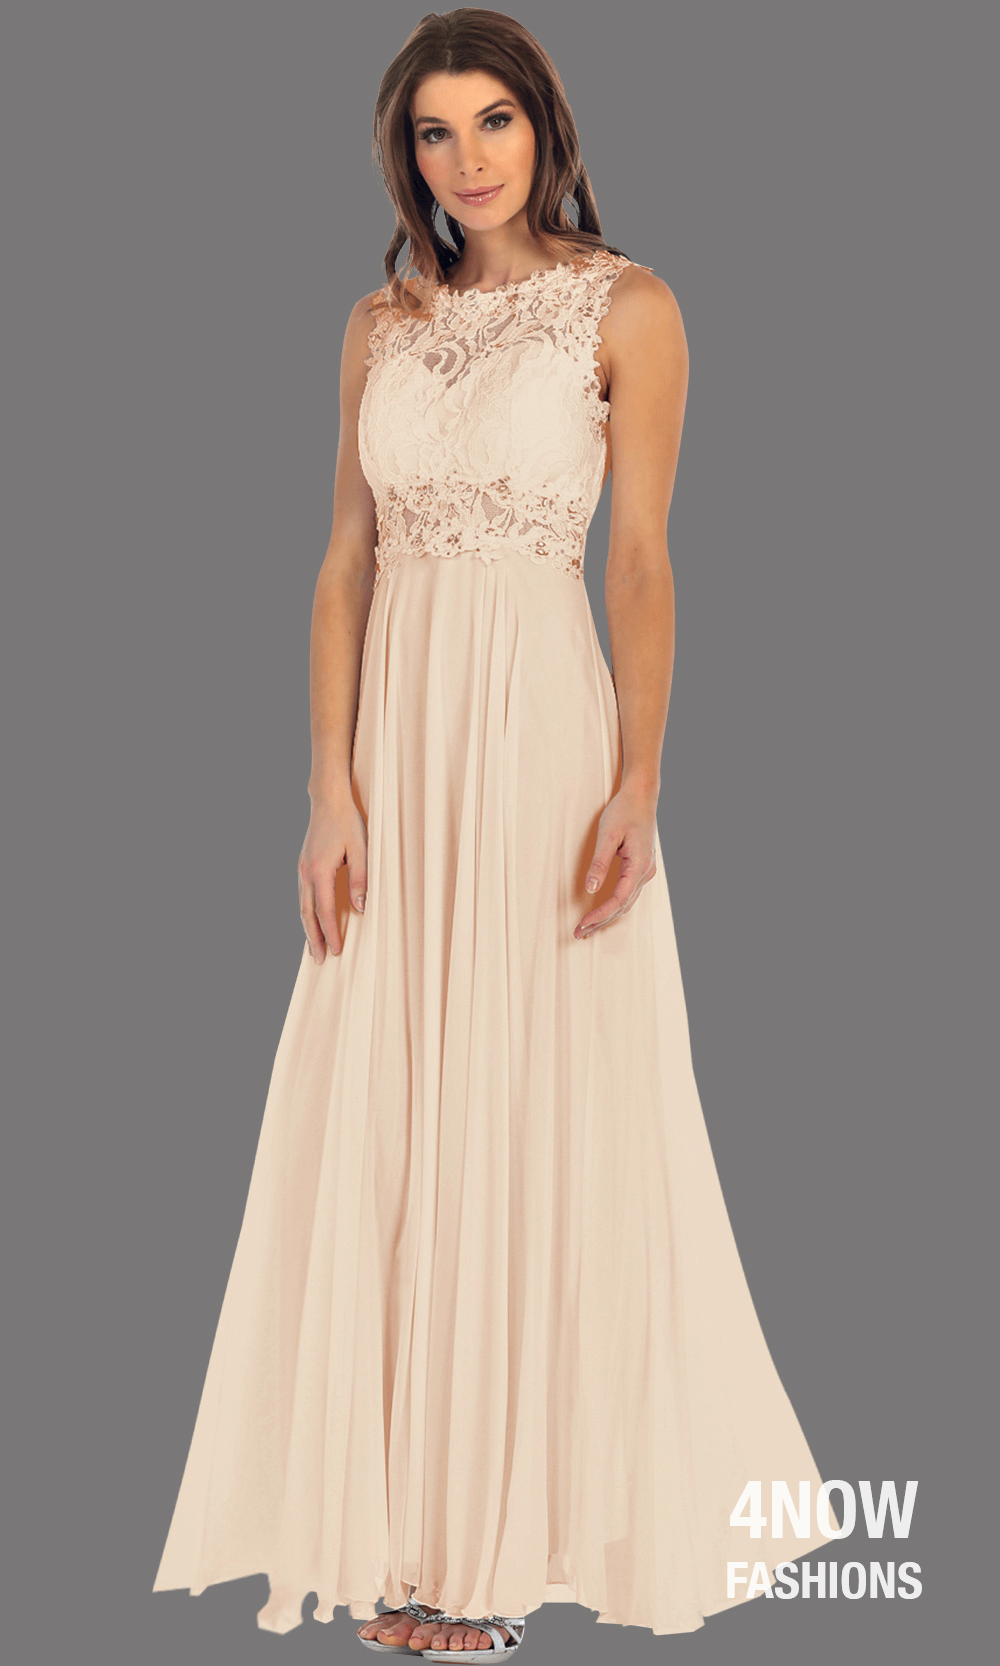 Long Champagne High Neck Dress with Chiffon A-line Skirt